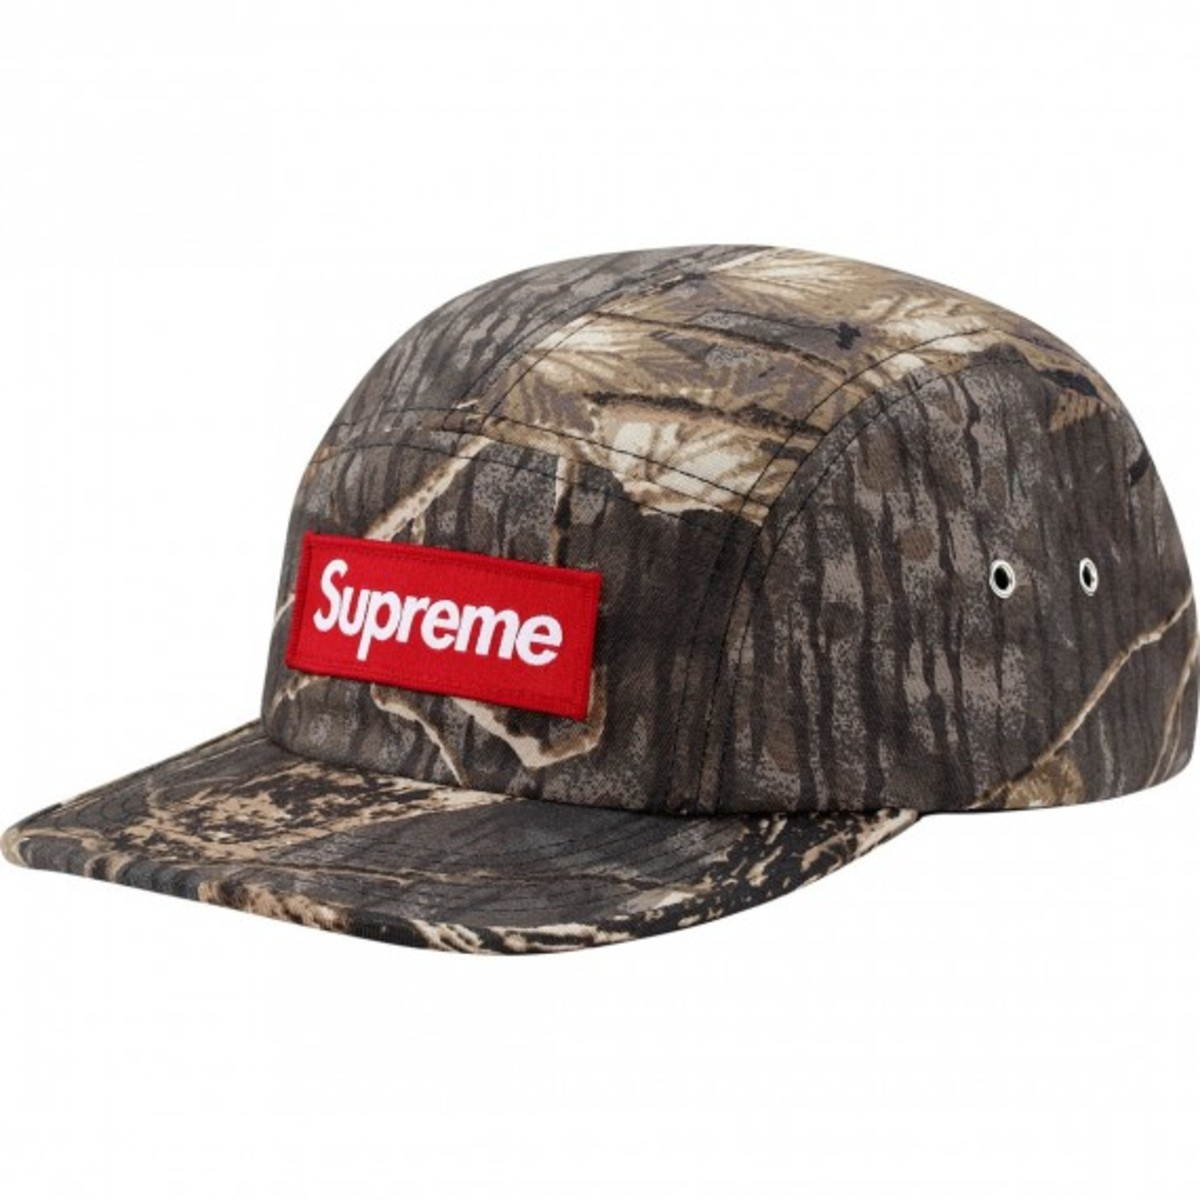 supreme-fall-winter-2011-collection-available-now-23